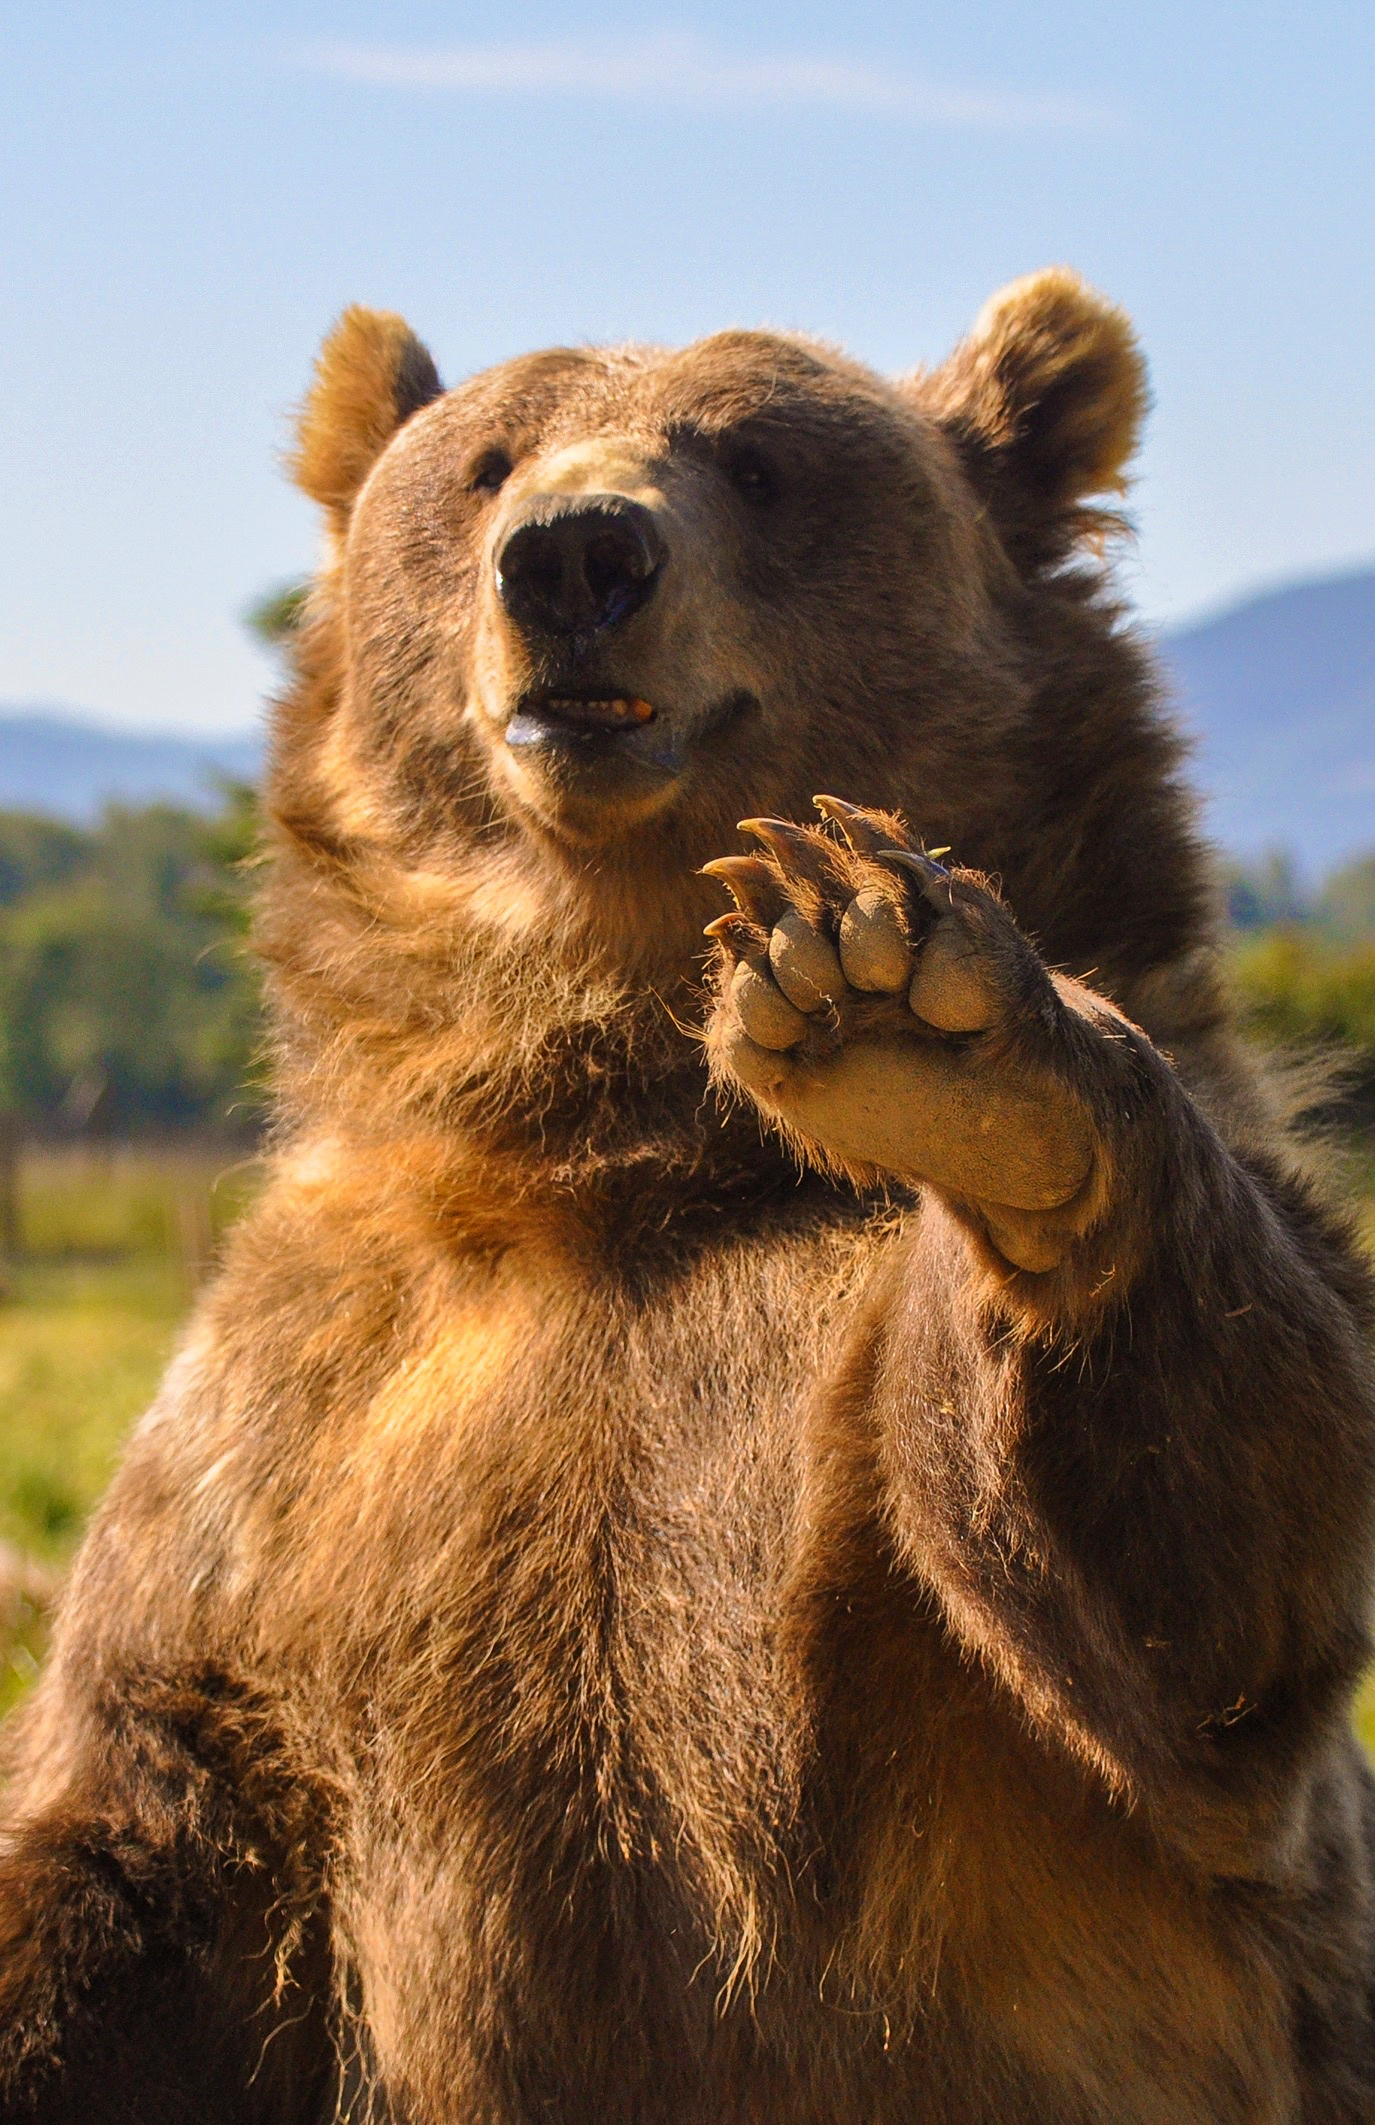 waving-bear.jpg